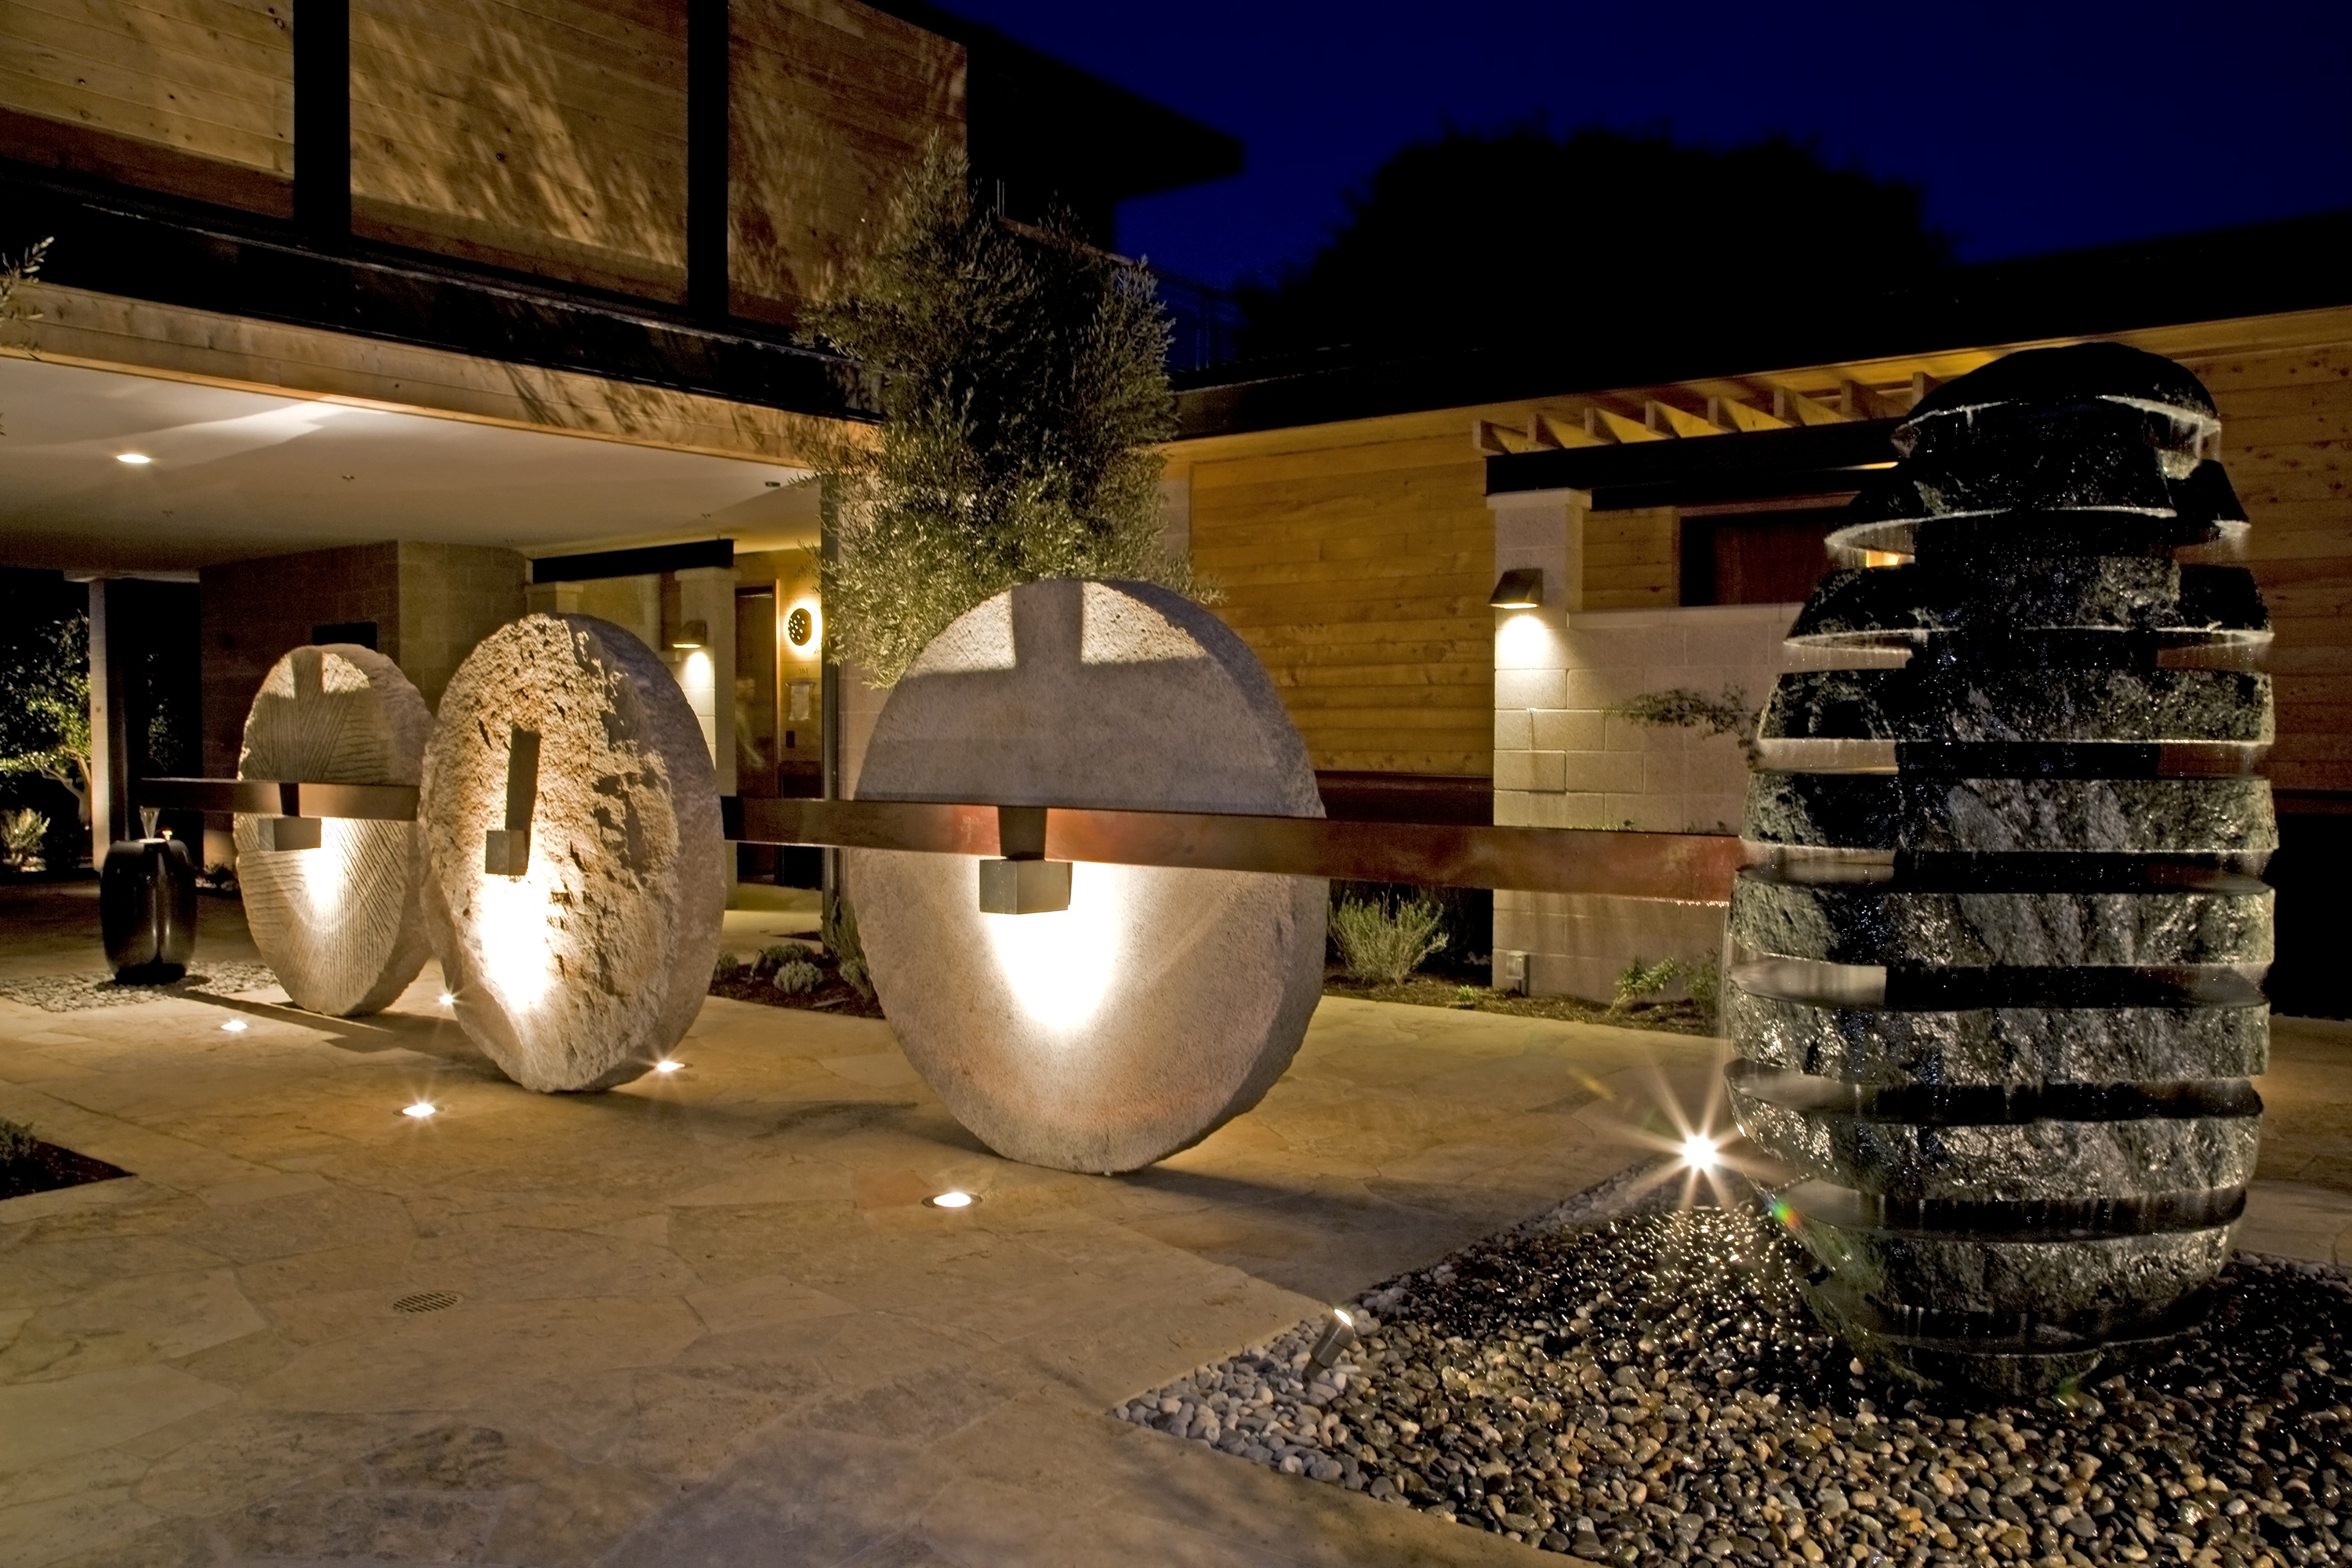 This fountain, featuring wheat grinding stones, was designed and installed in the Olive Courtyard of the Bardessono Hotel.